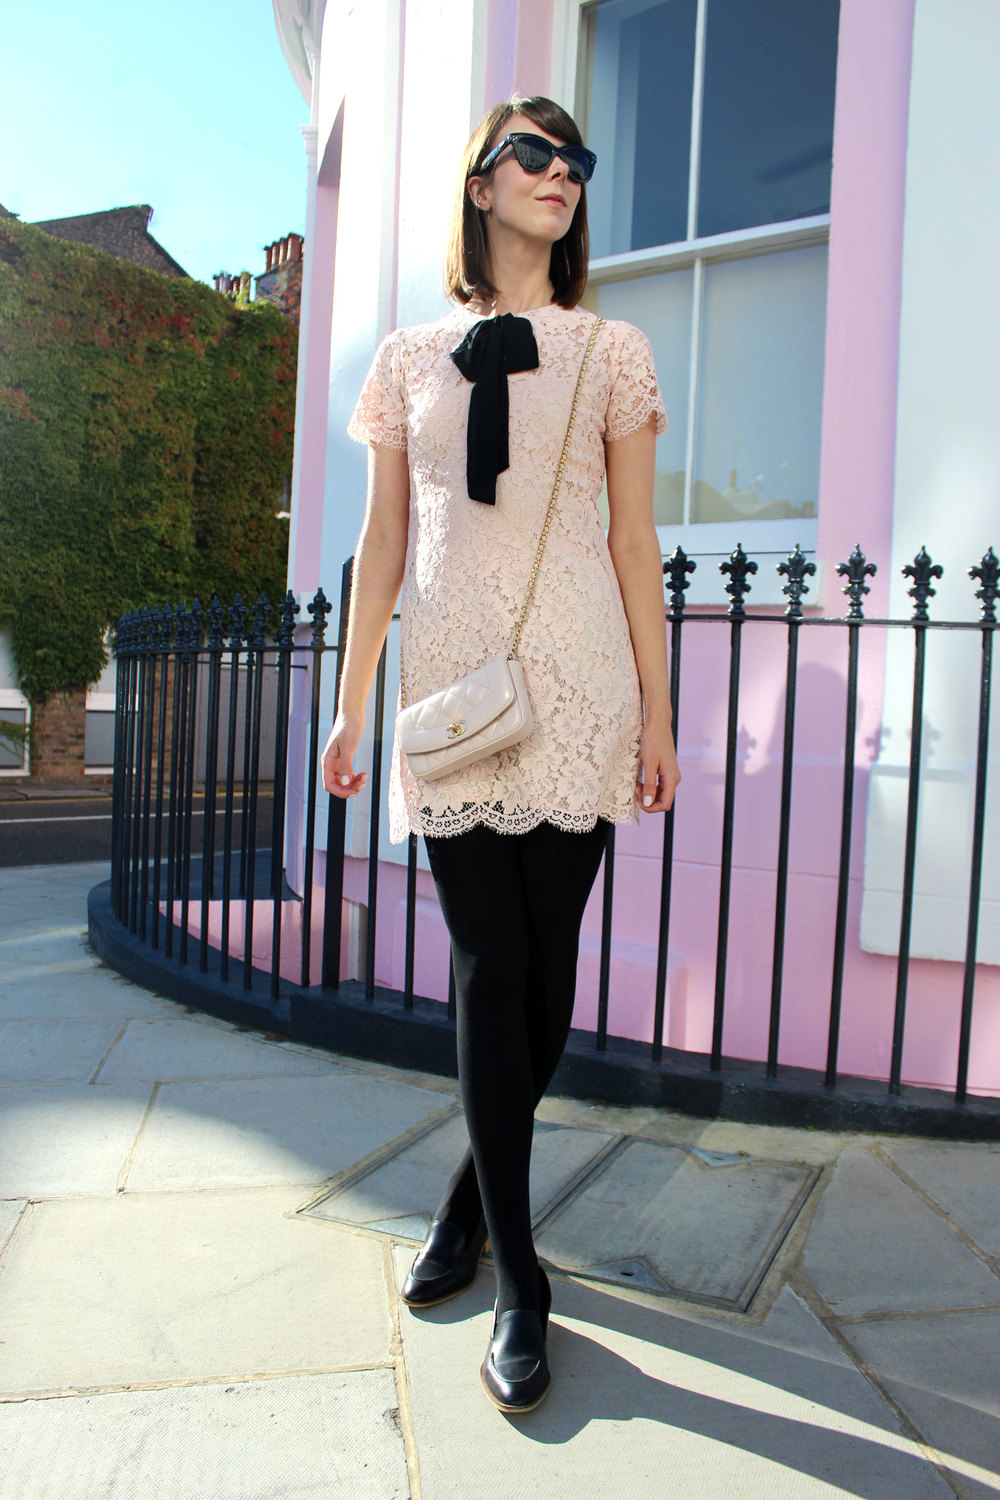 Blush pink Sandro dress with black bow paired with opaque black tights